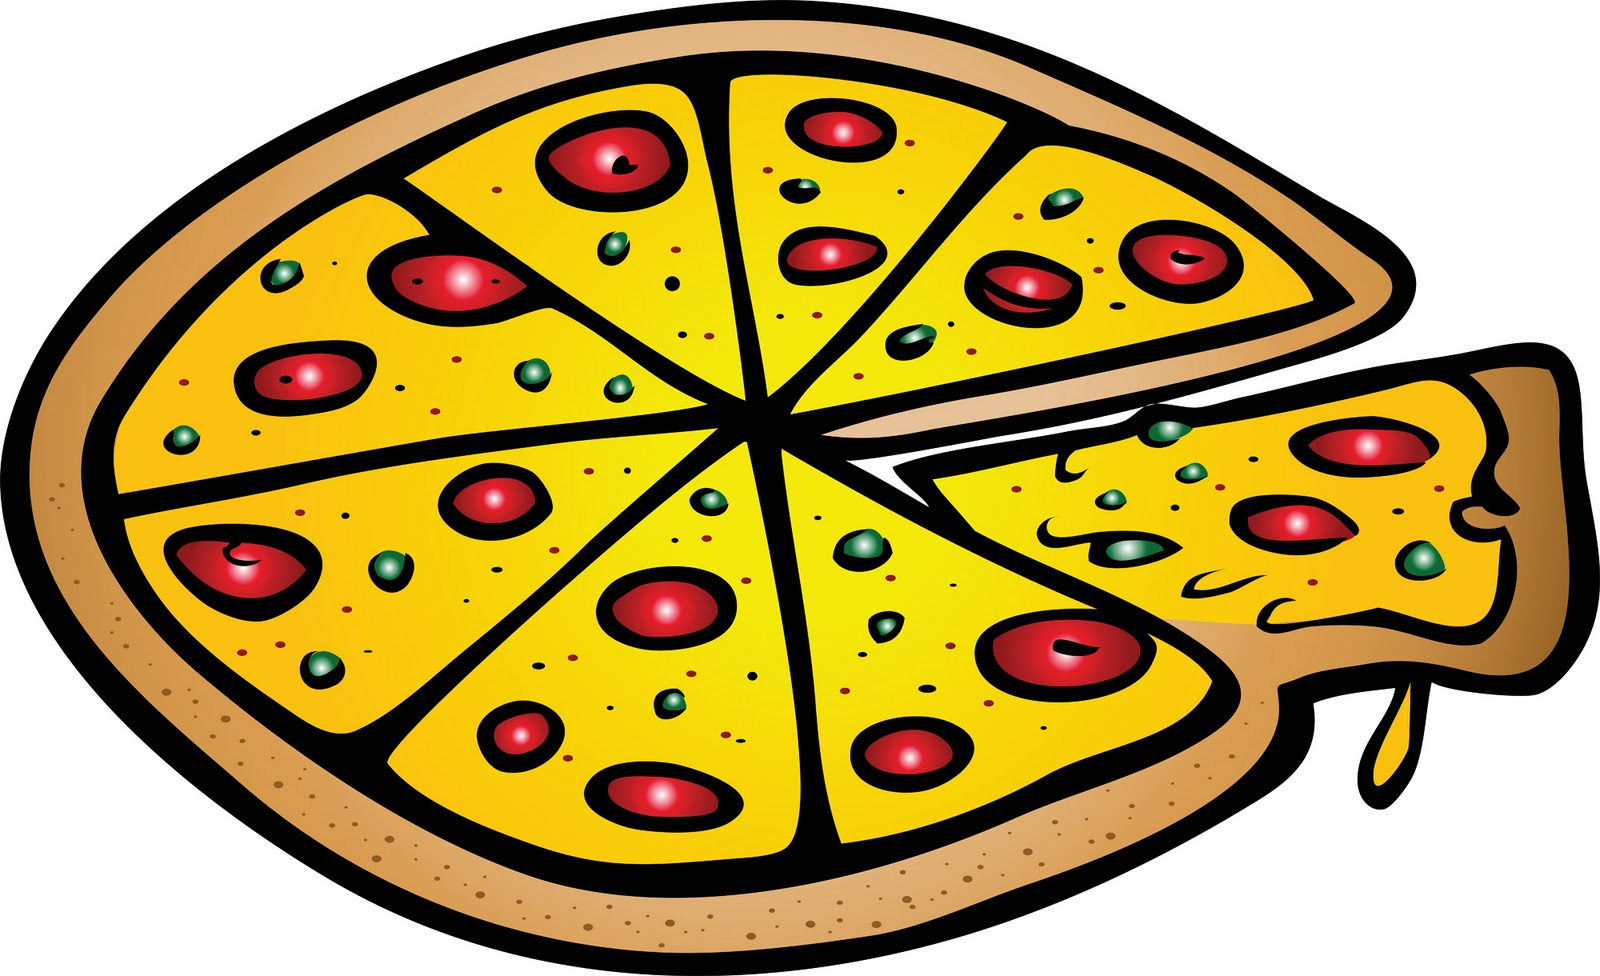 Pizza clip art - Cliparting clipartall.com